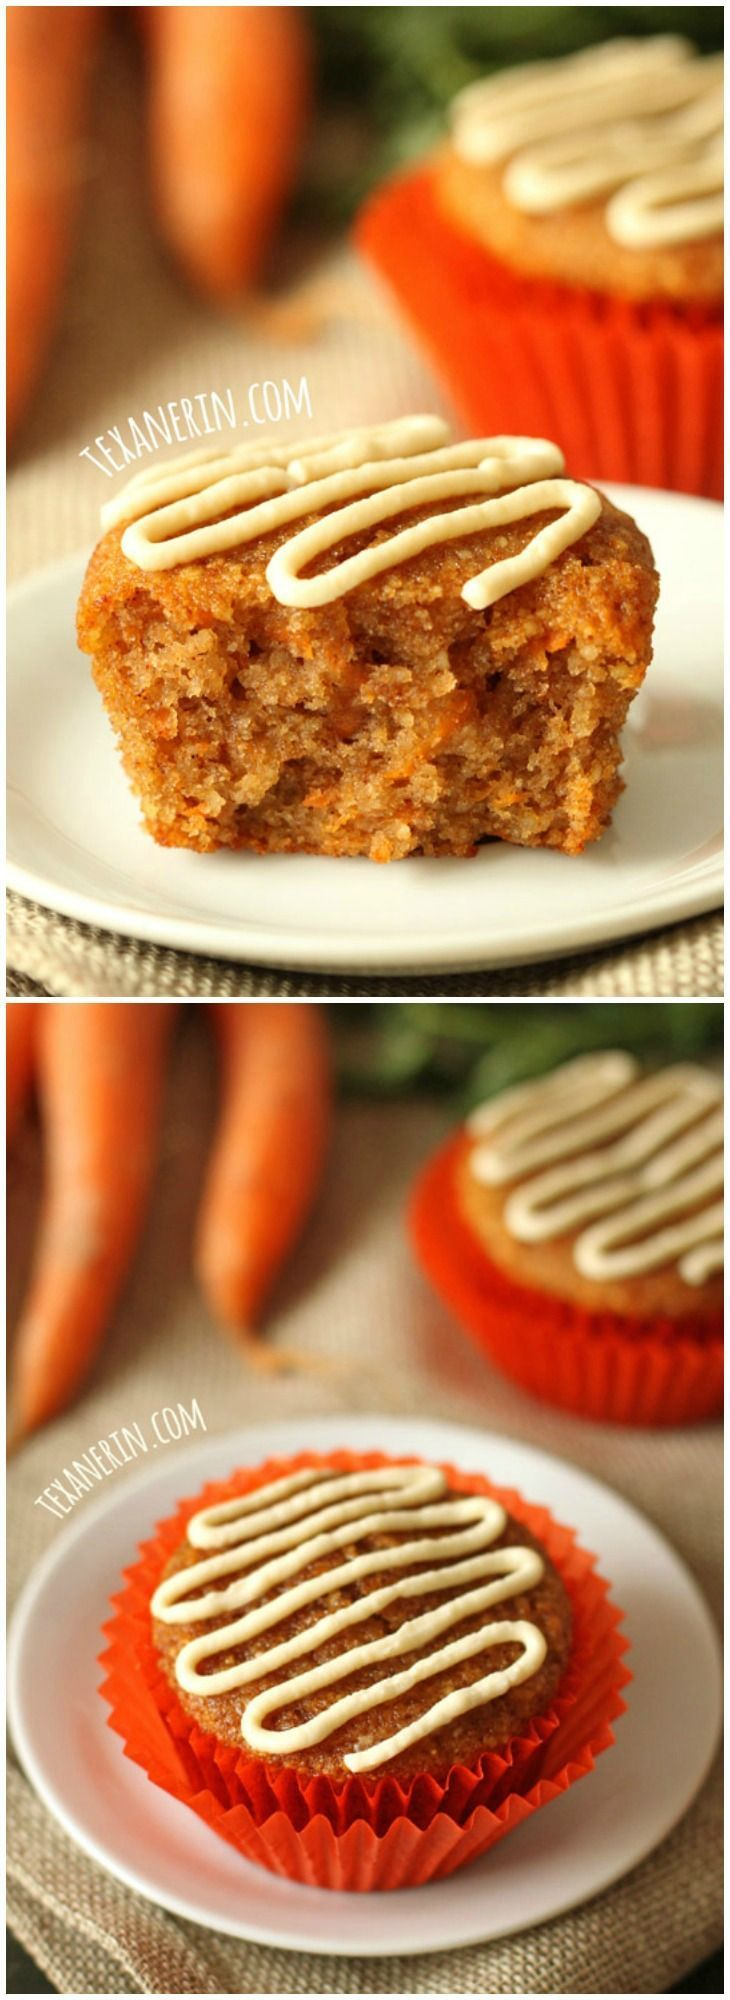 Moist, lightly sweetened with honey and even a little fluffy, these grain-free and gluten-free healthier carrot cake cupcakes (or muffins!) are the perfect Easter treat. With a dairy-free option.